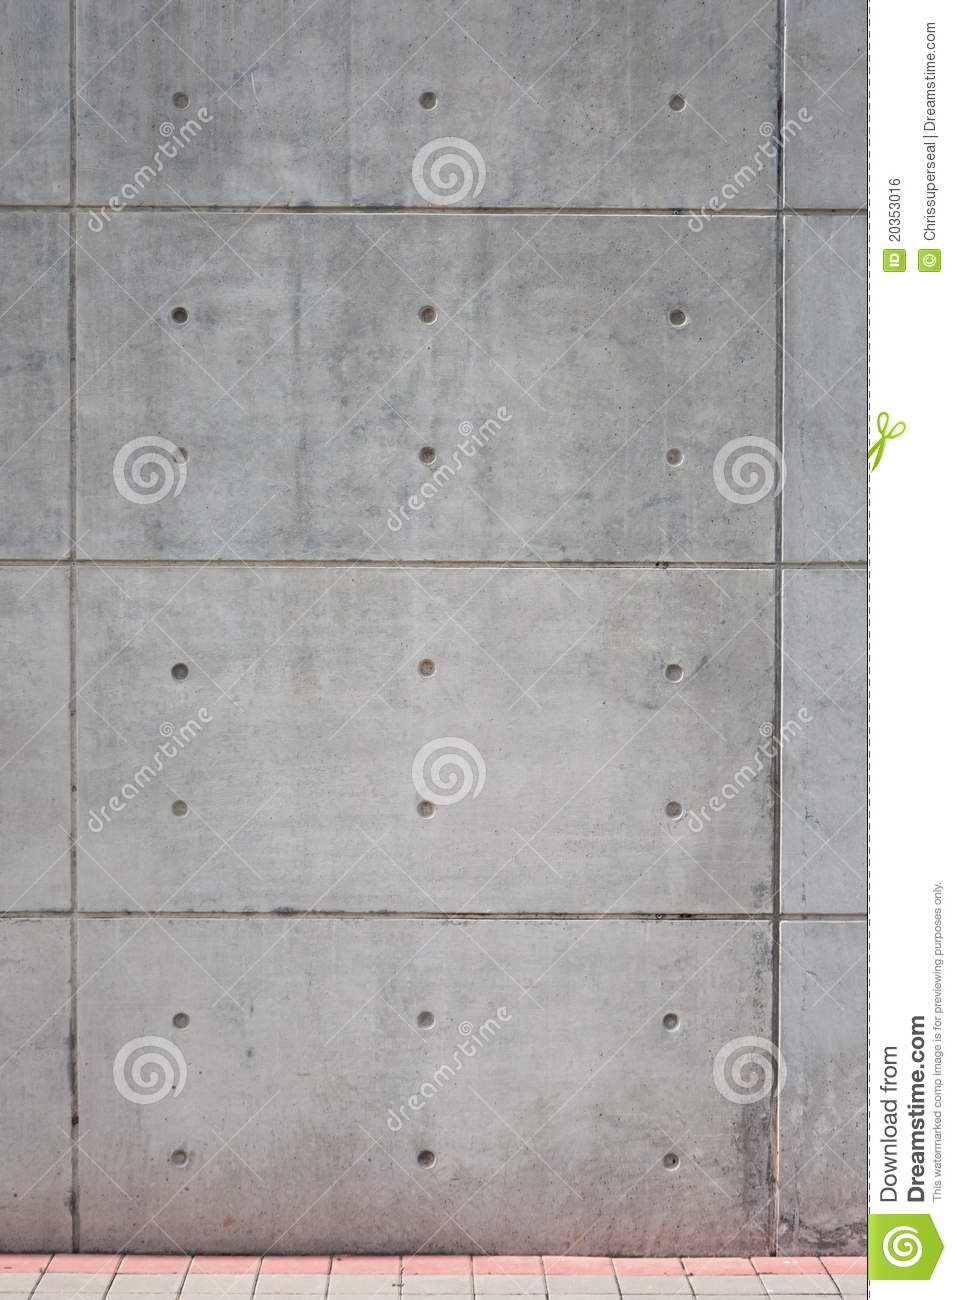 Concrete Wall Stock Photo Image Of Stained Style